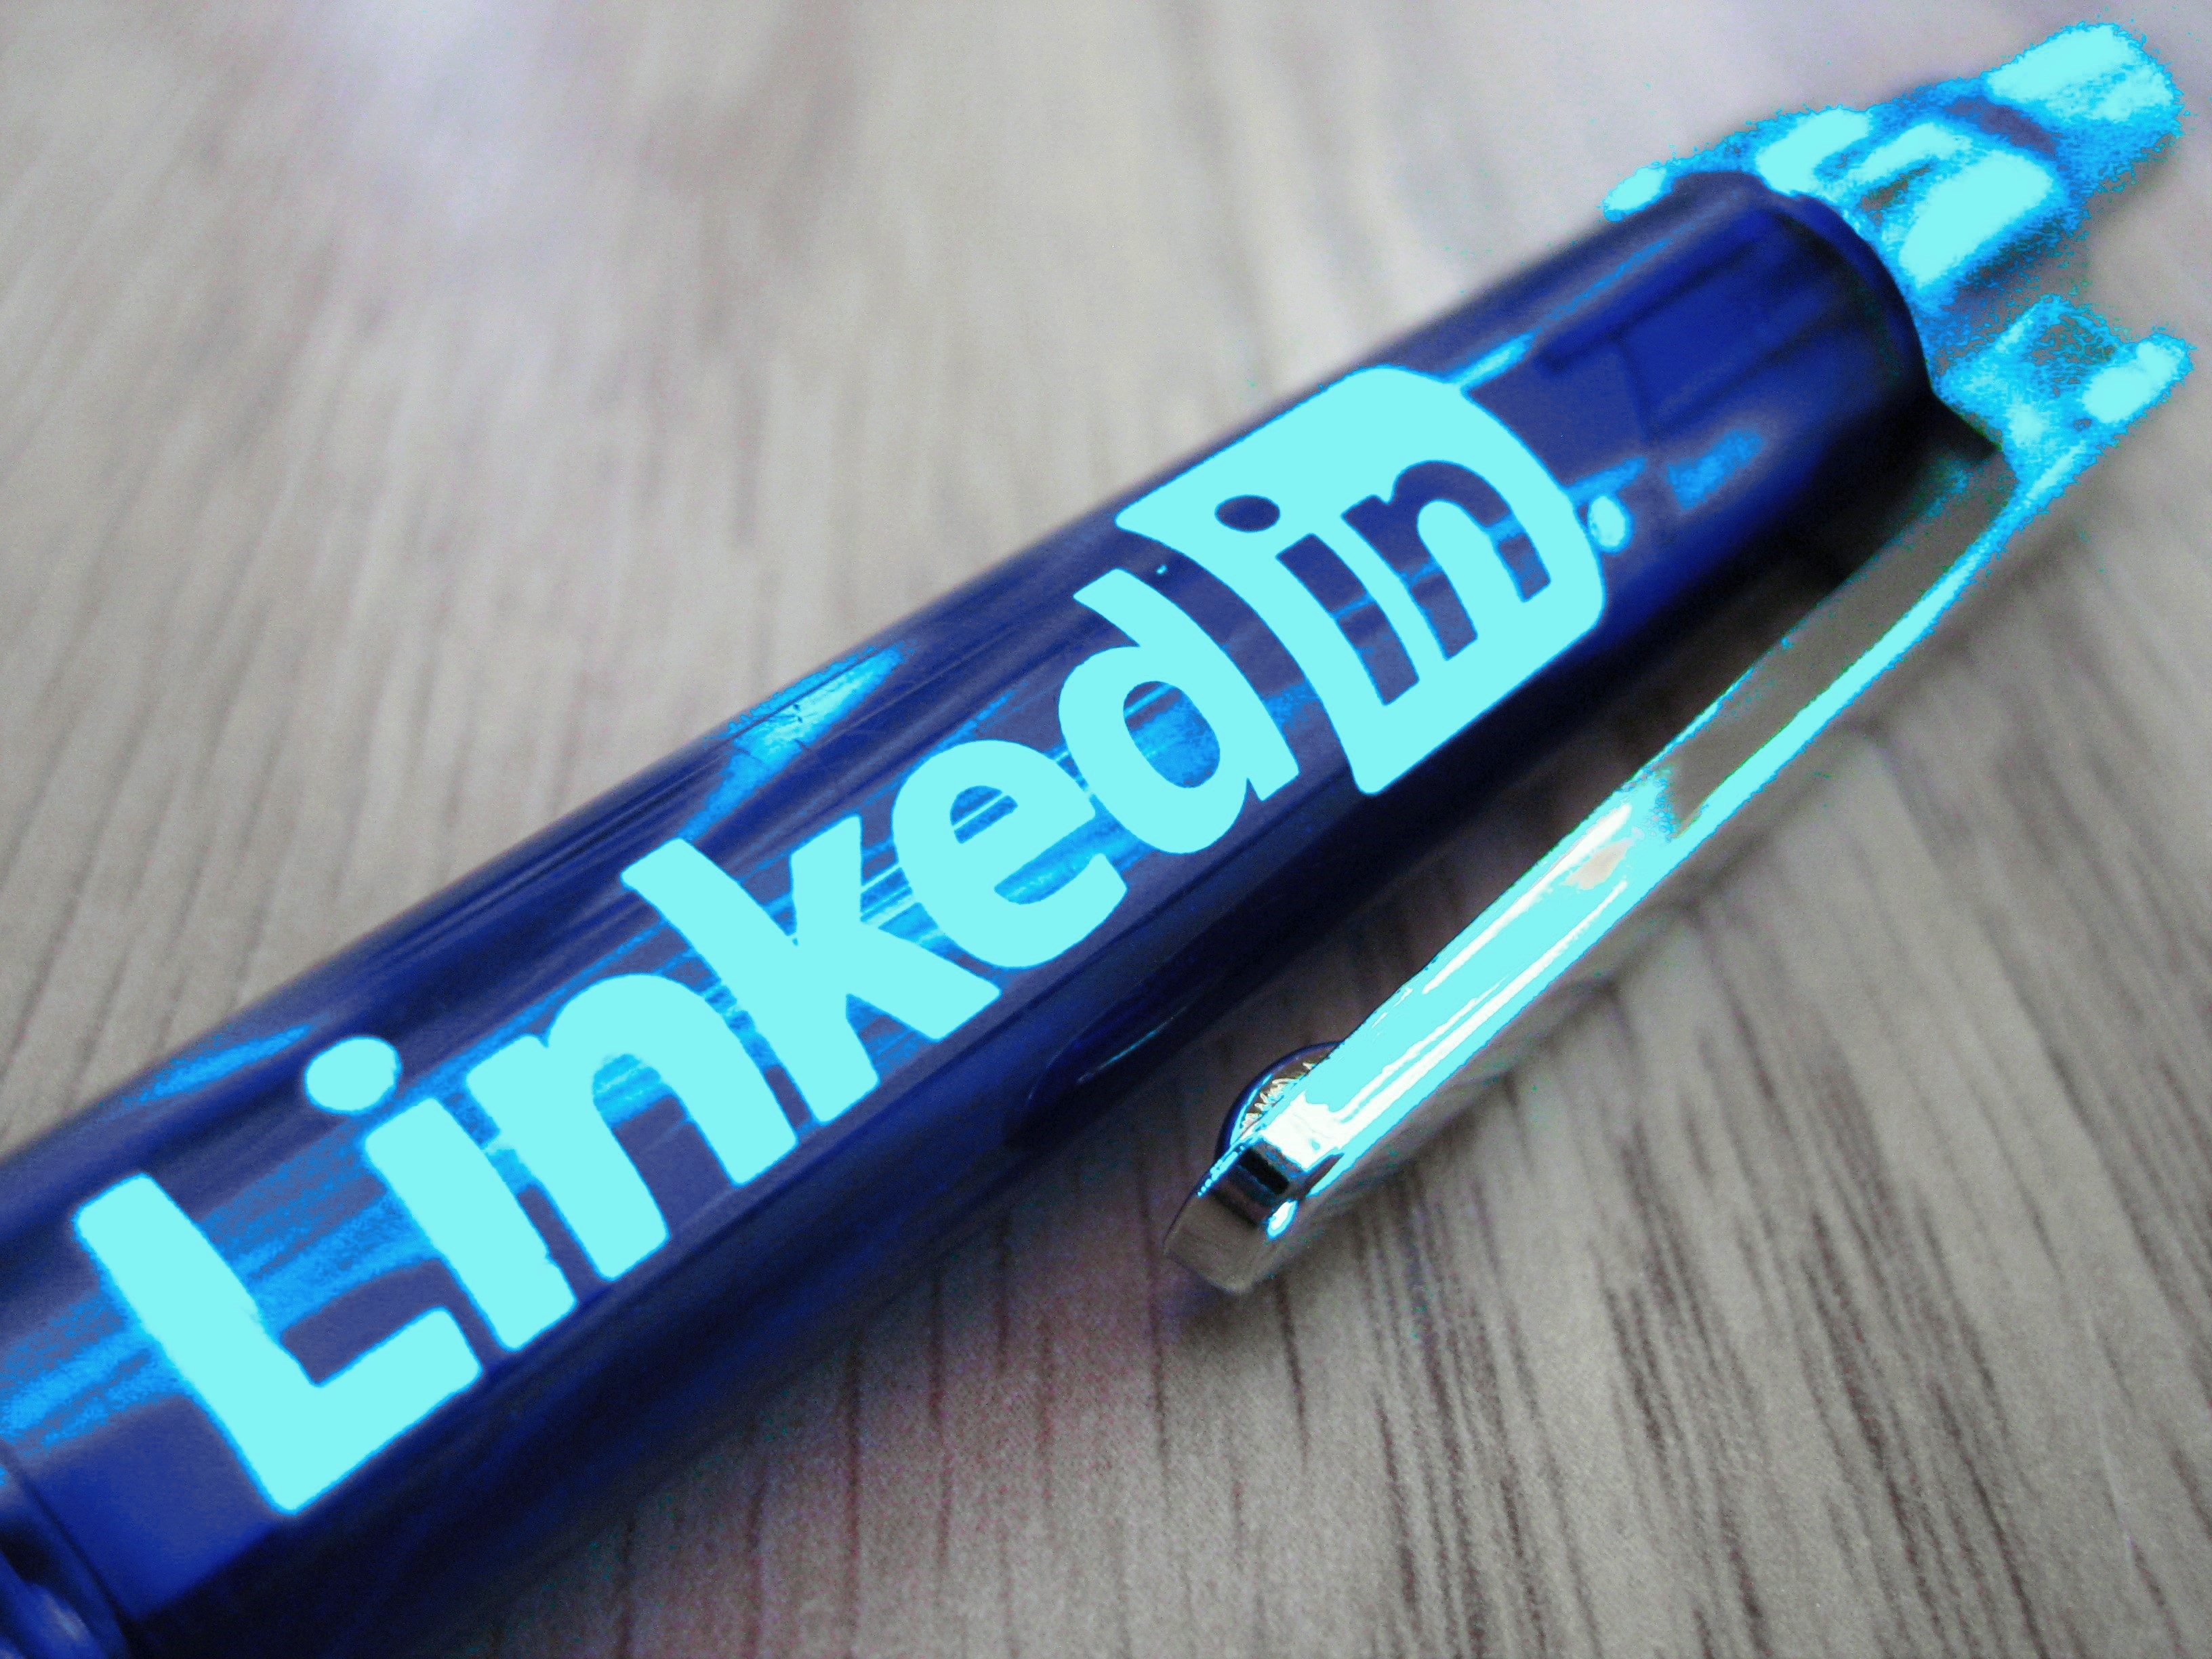 Vantagens do LinkedIn para as empresas